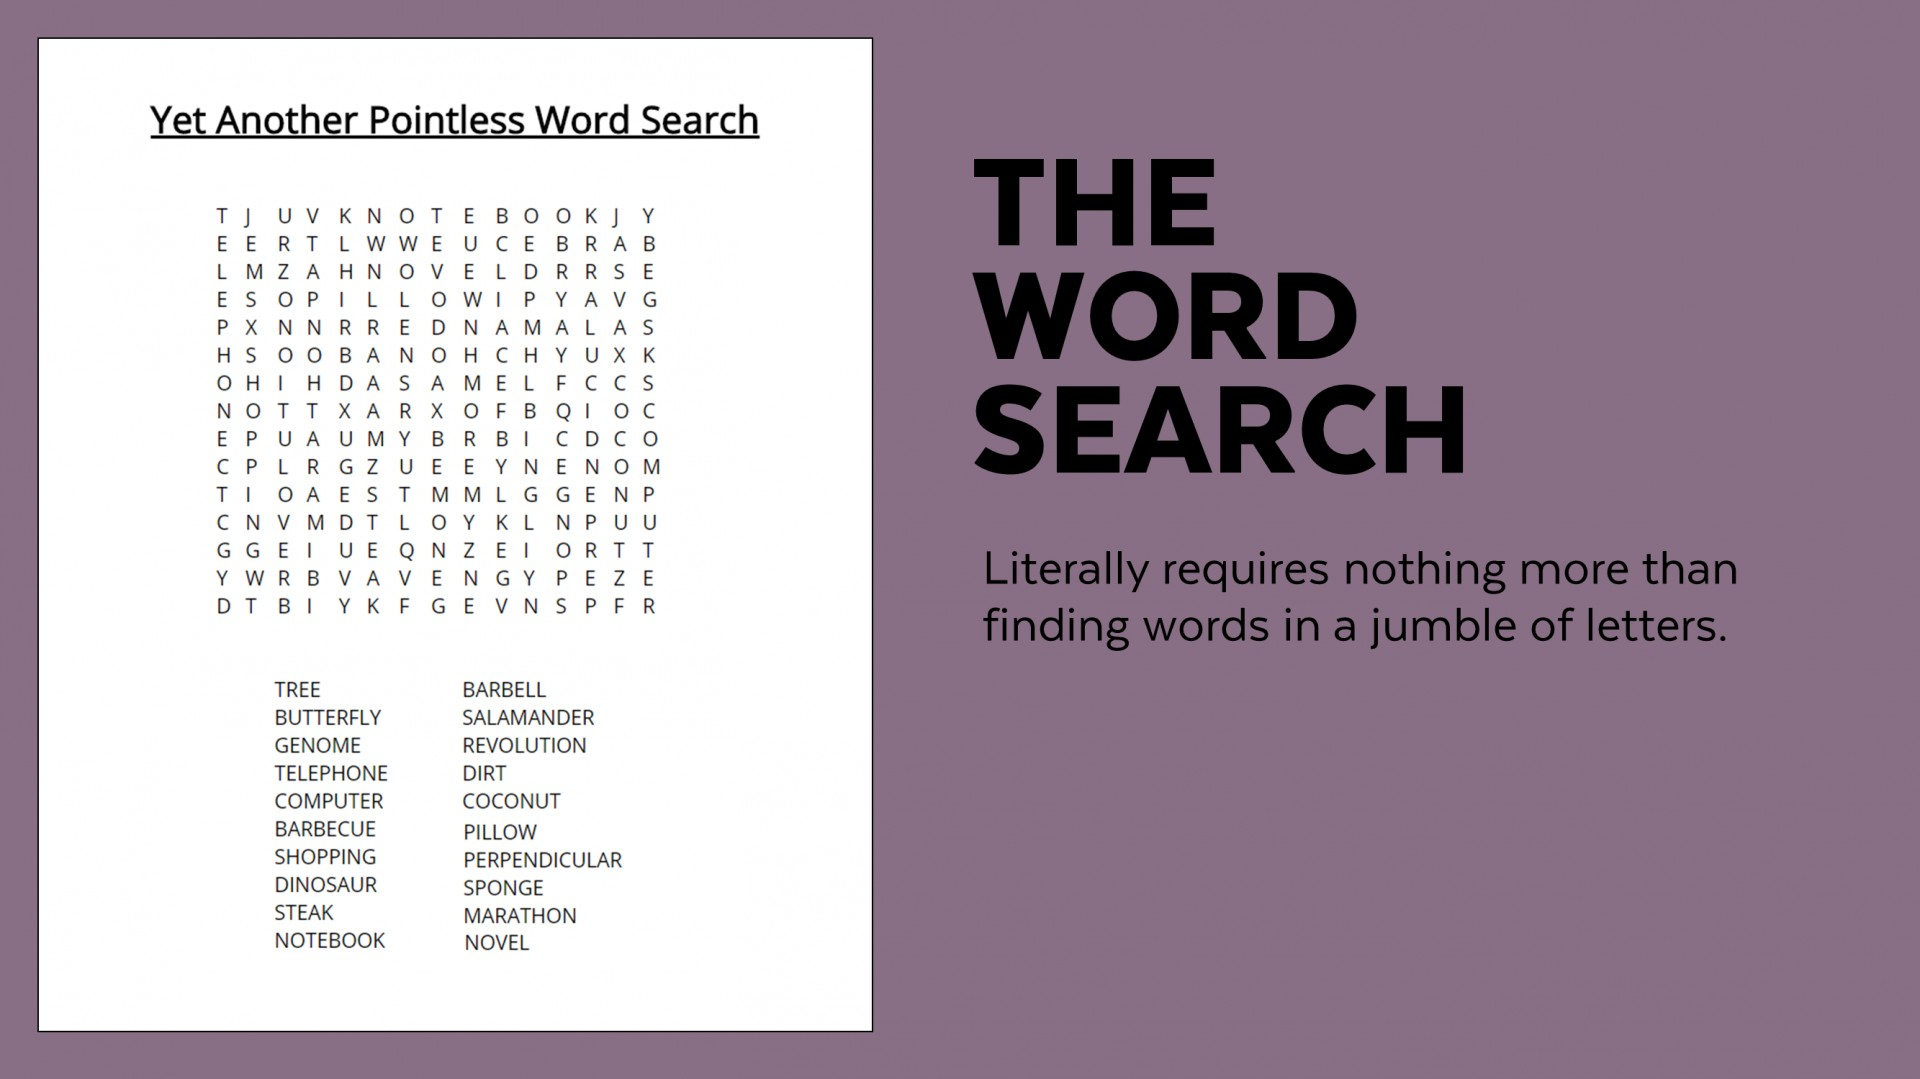 006 Sample Word Search Essay Example Superfluous Part Of An Awesome Crossword Clue 1920